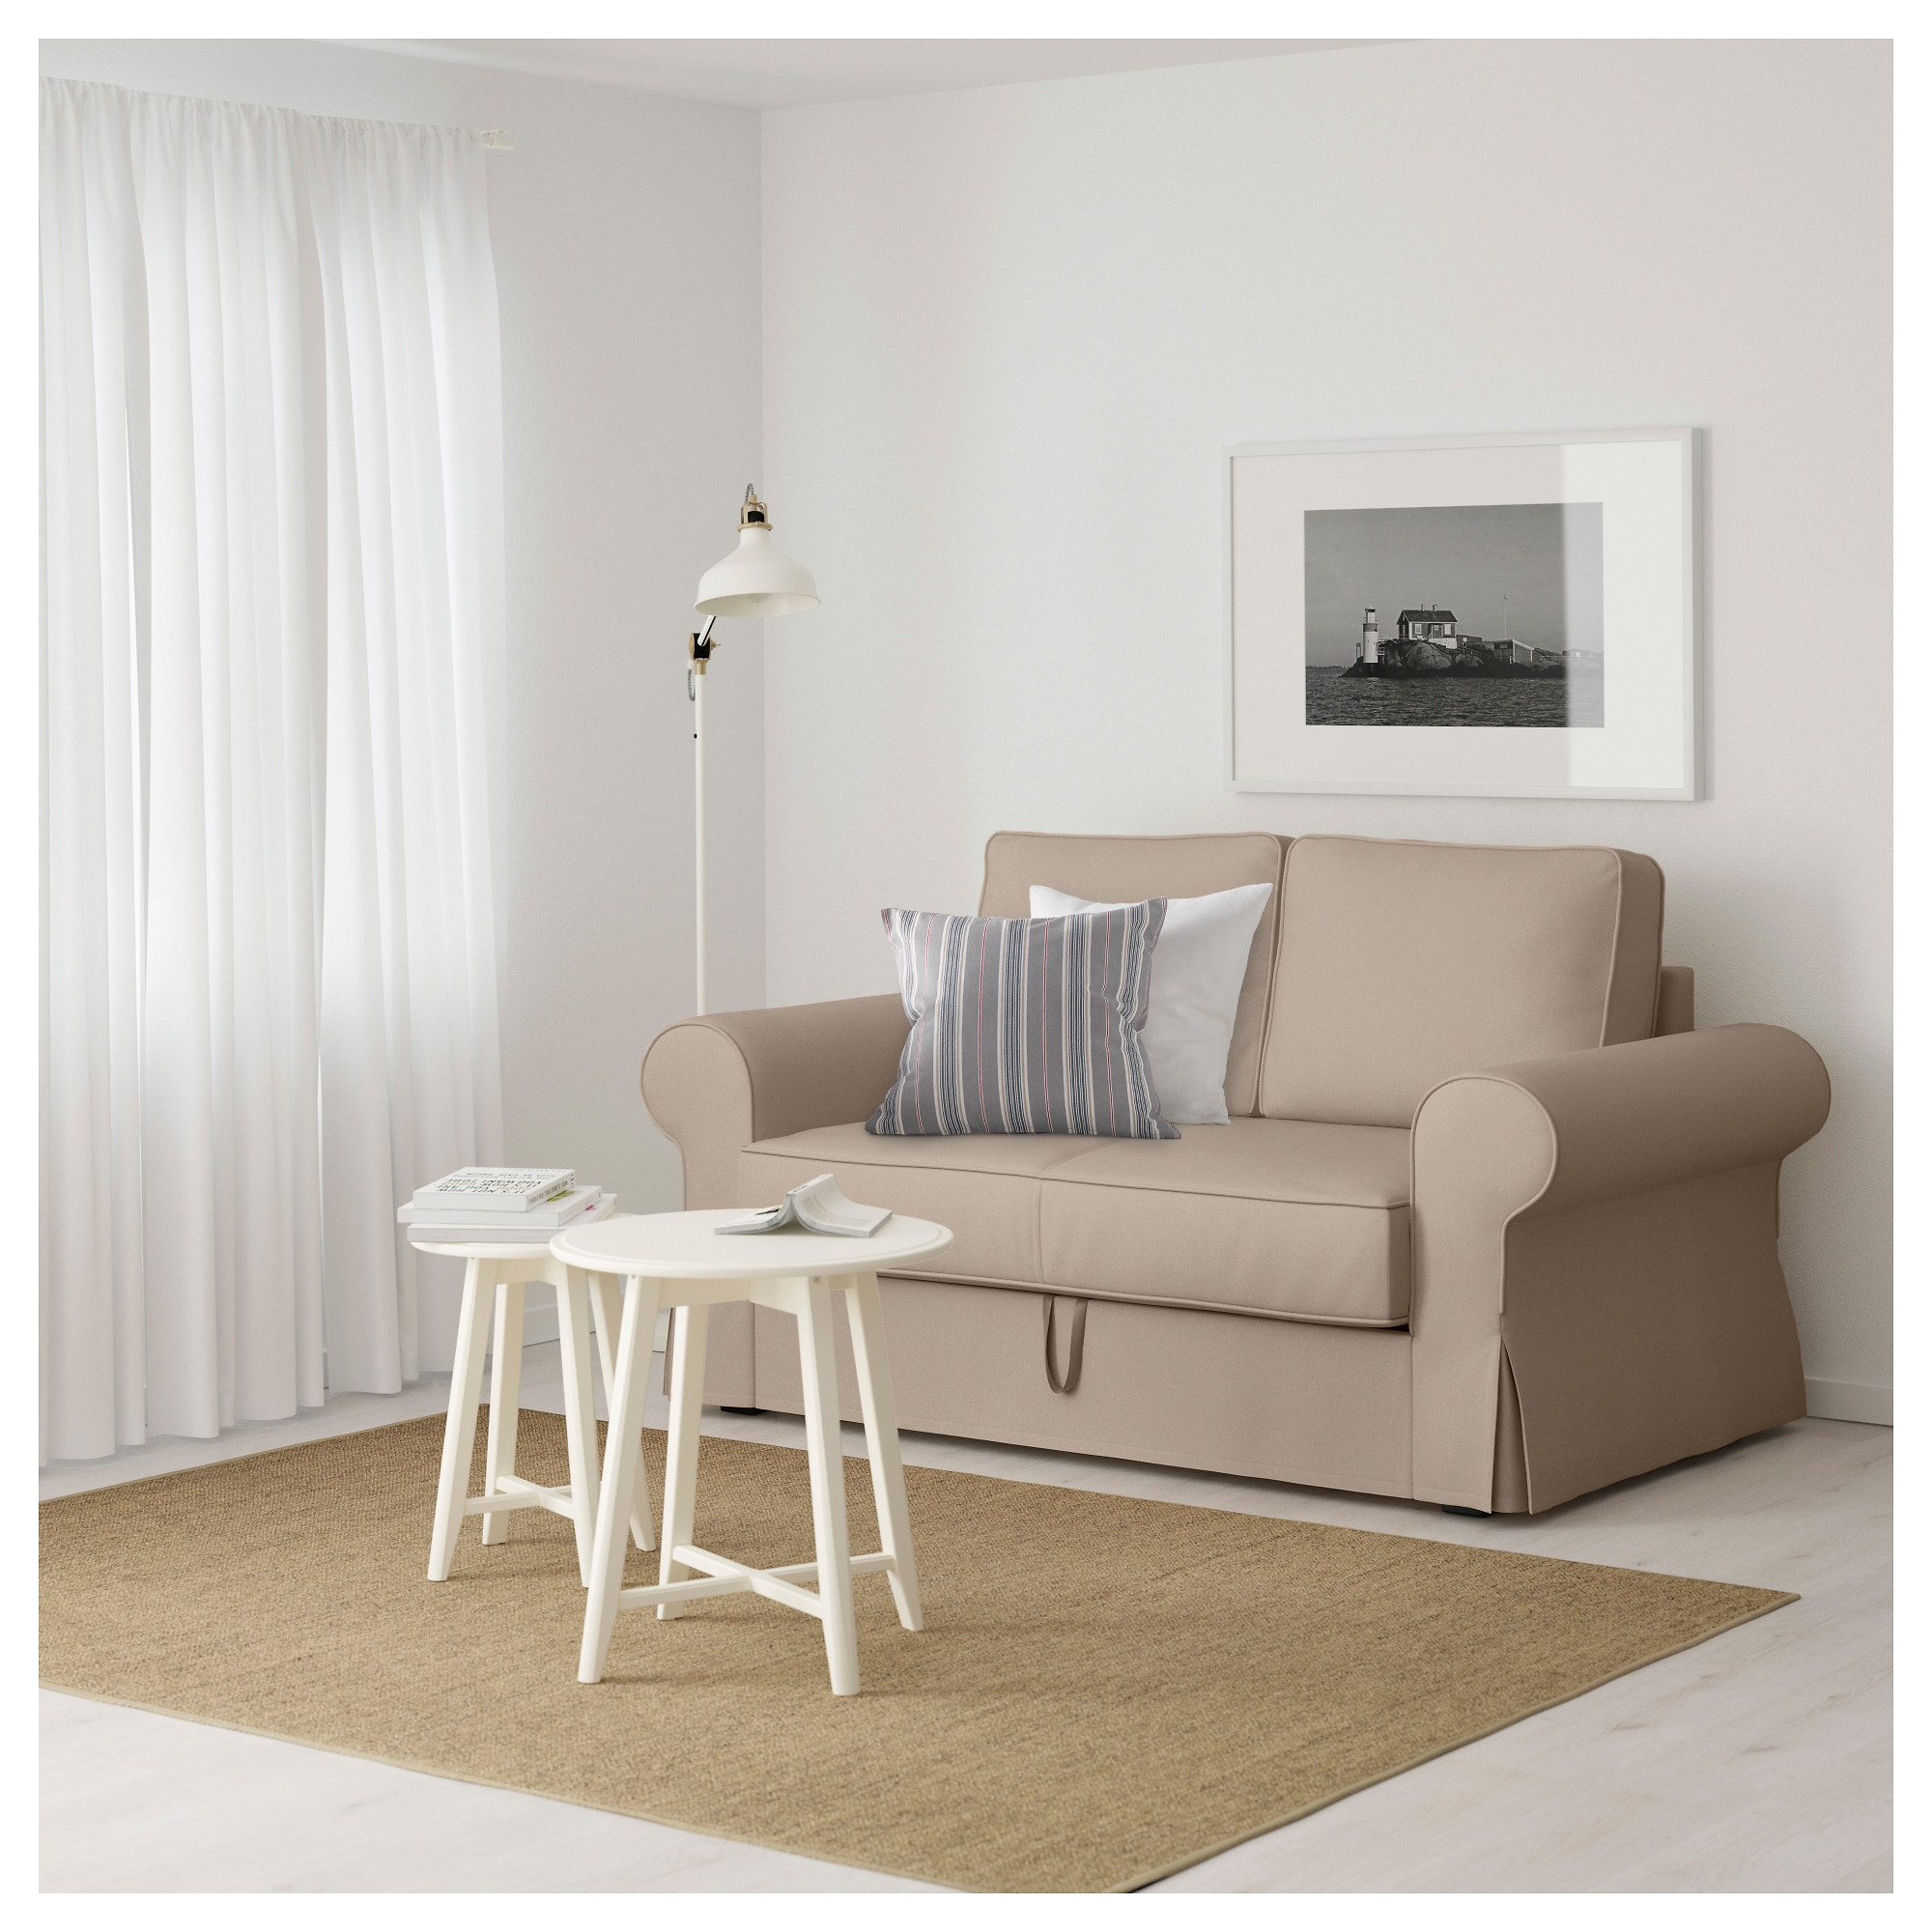 Backabro Sessel Backabro 2er Bettsofa Tygelsjö Beige In 2019 Products Pinterest